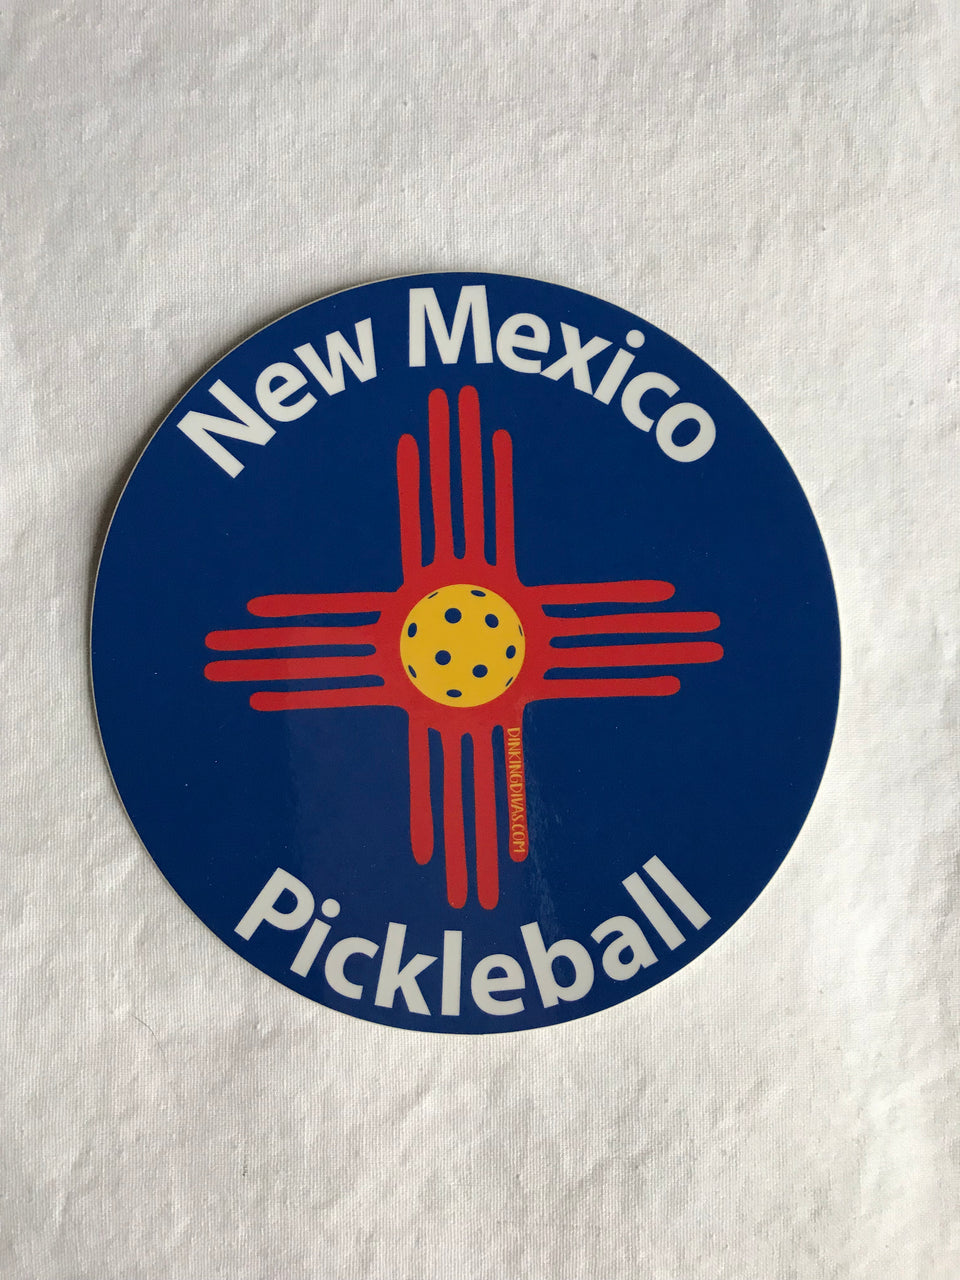 New Mexico Pickleball Decal